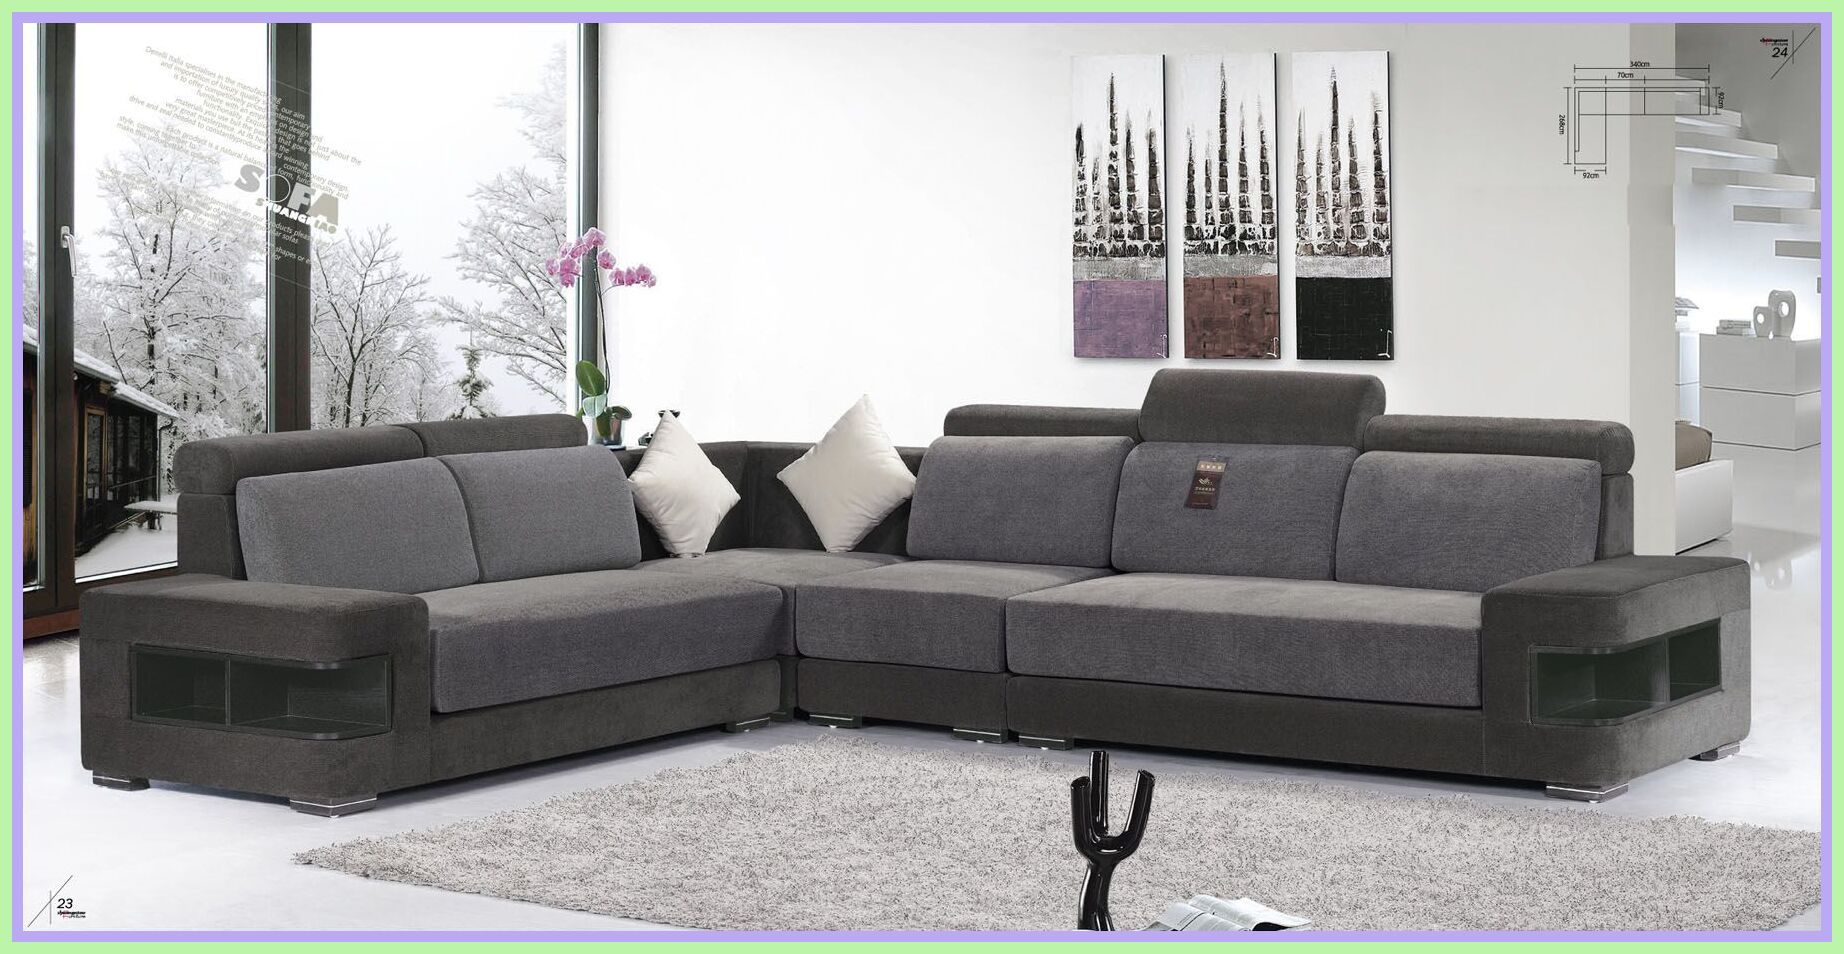 Pin On Sofa Furniture Chair Images